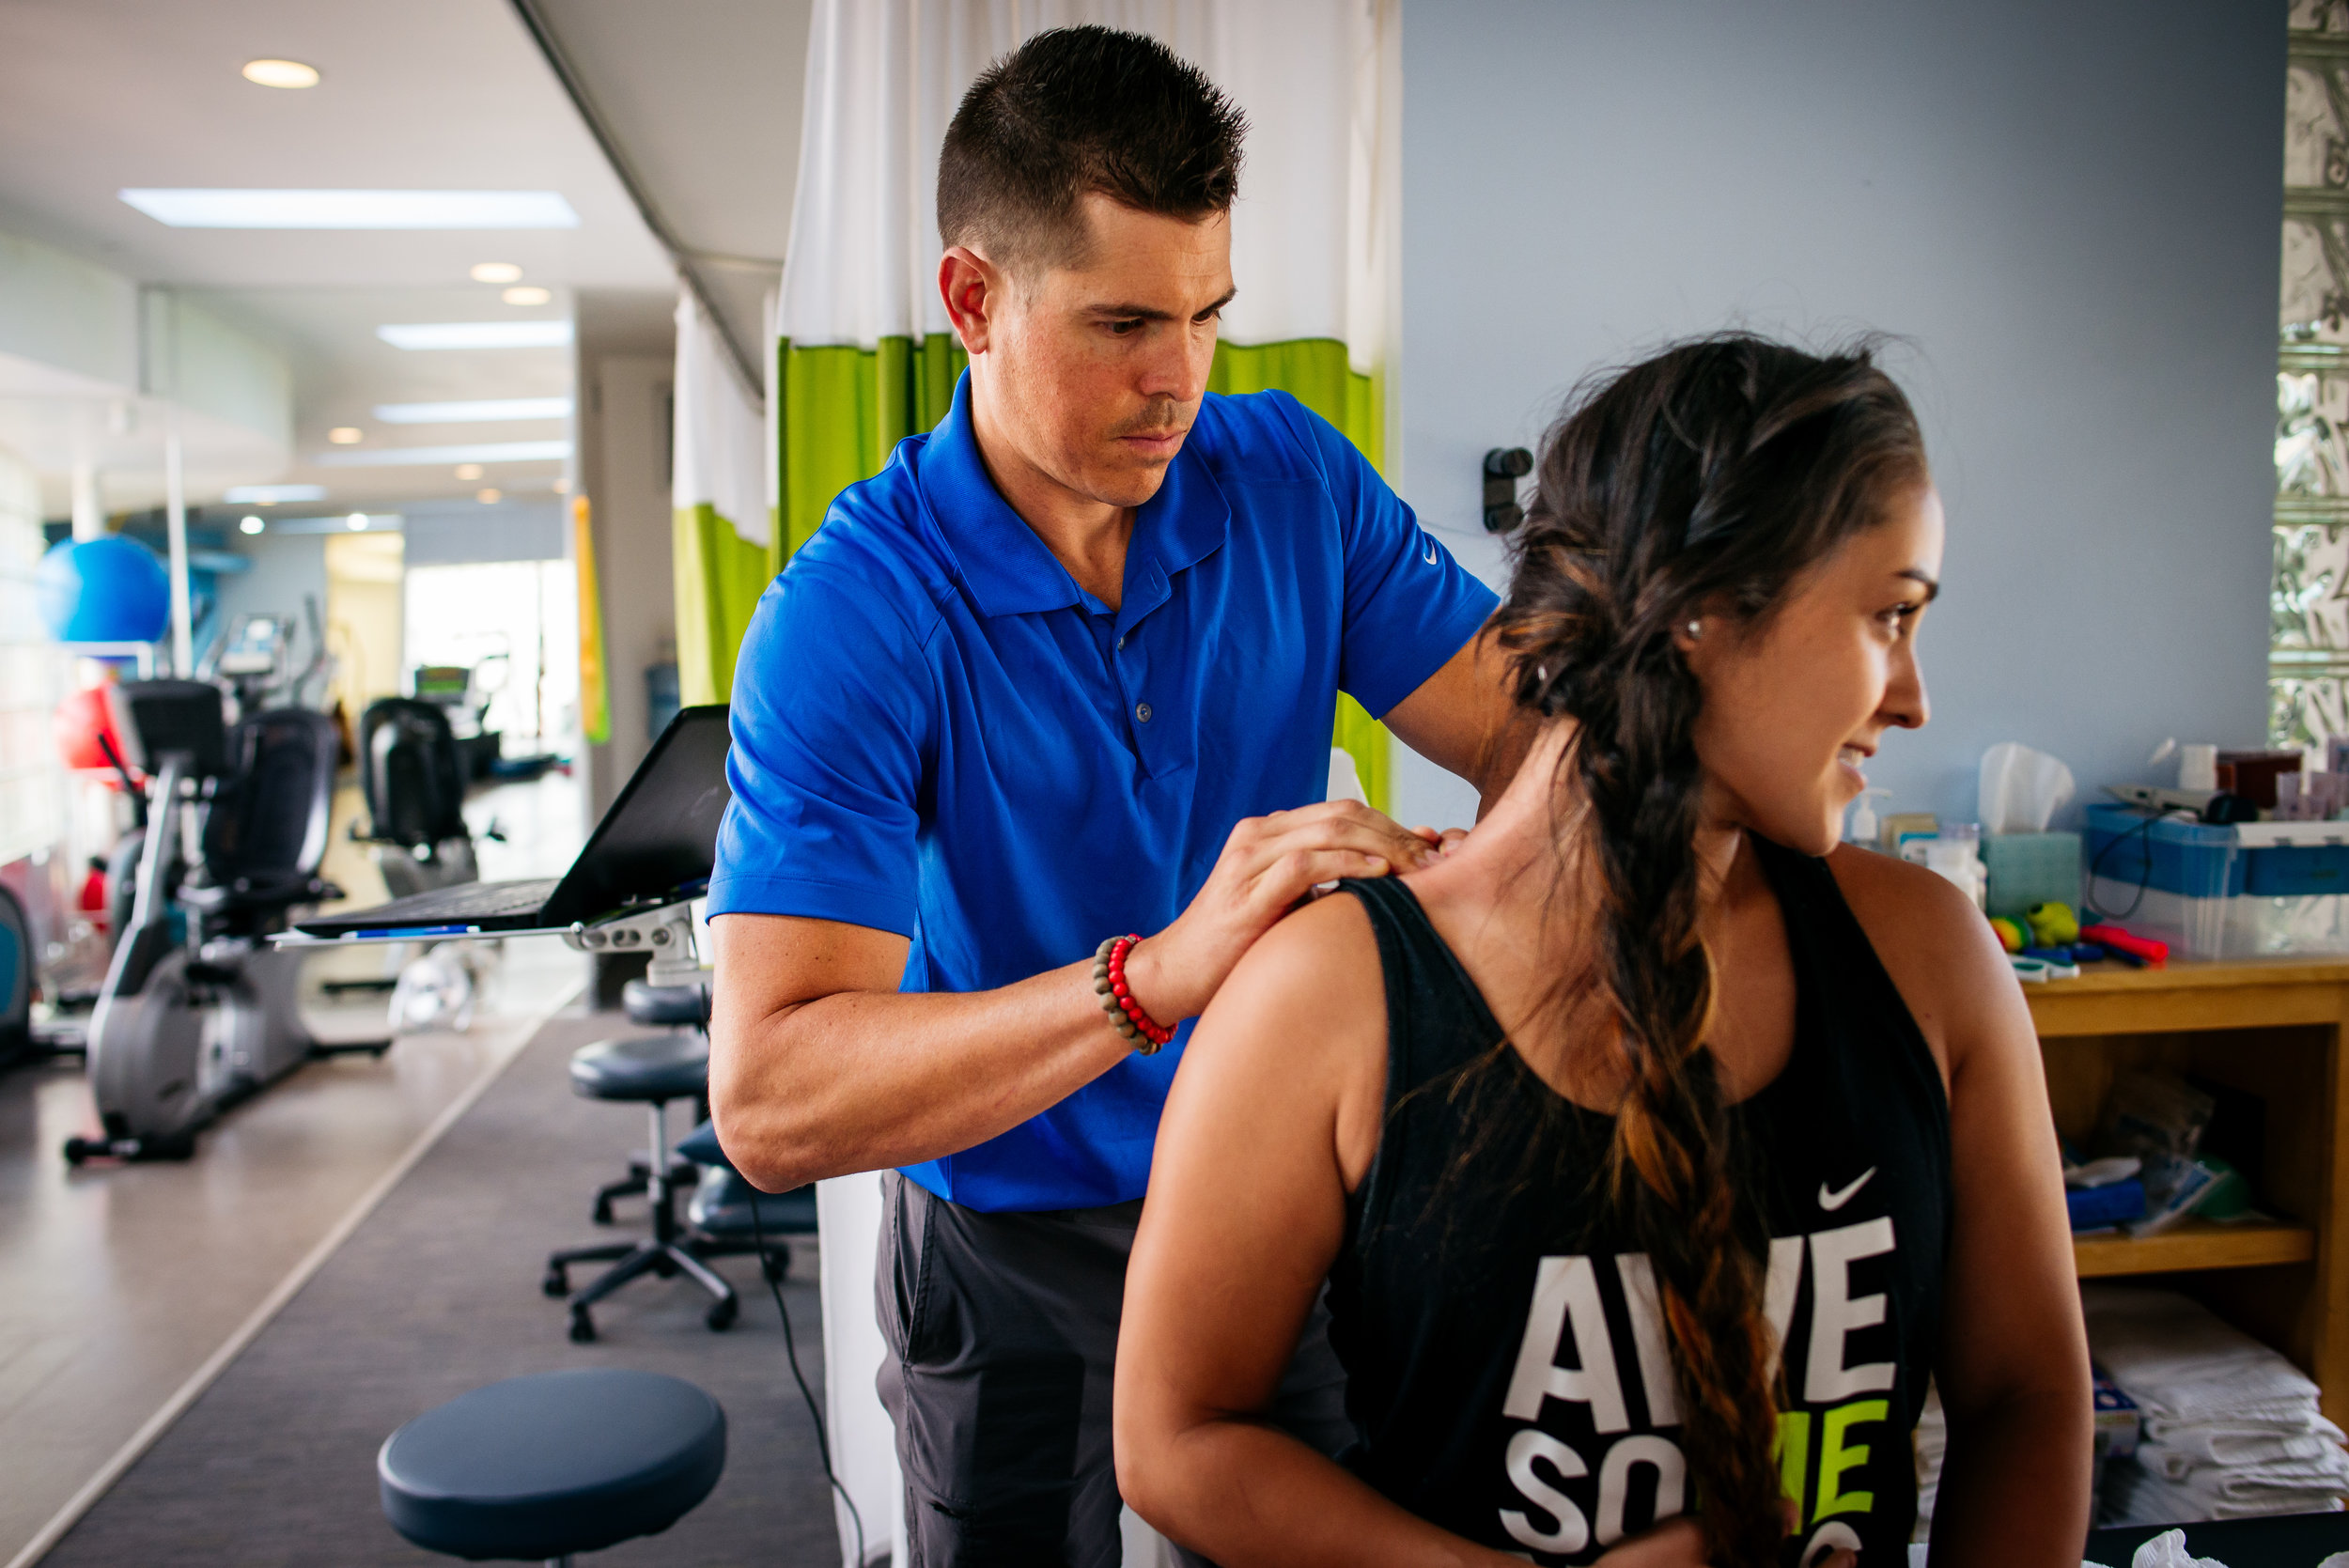 Neck pain and joint injury recovery at langford physical therapy albuquerque